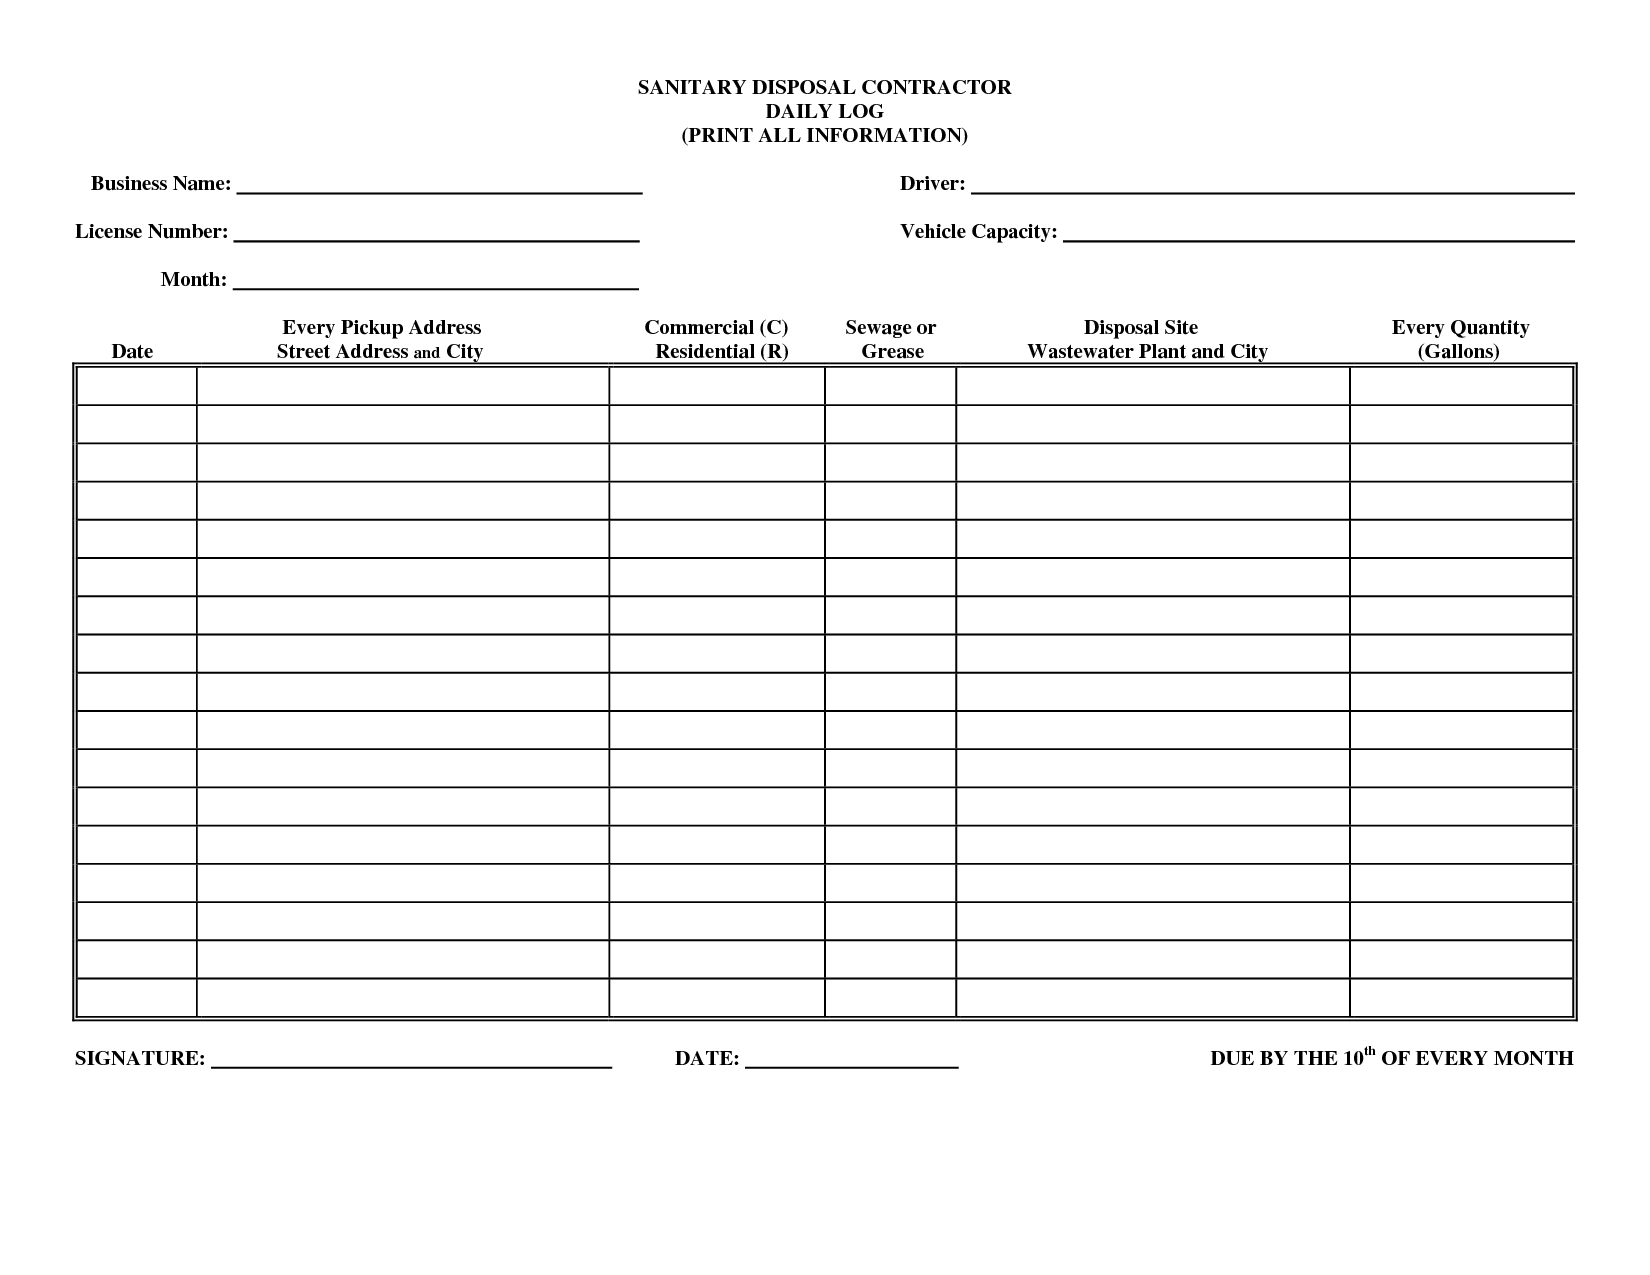 duty log template - driver daily log sheet template business forms